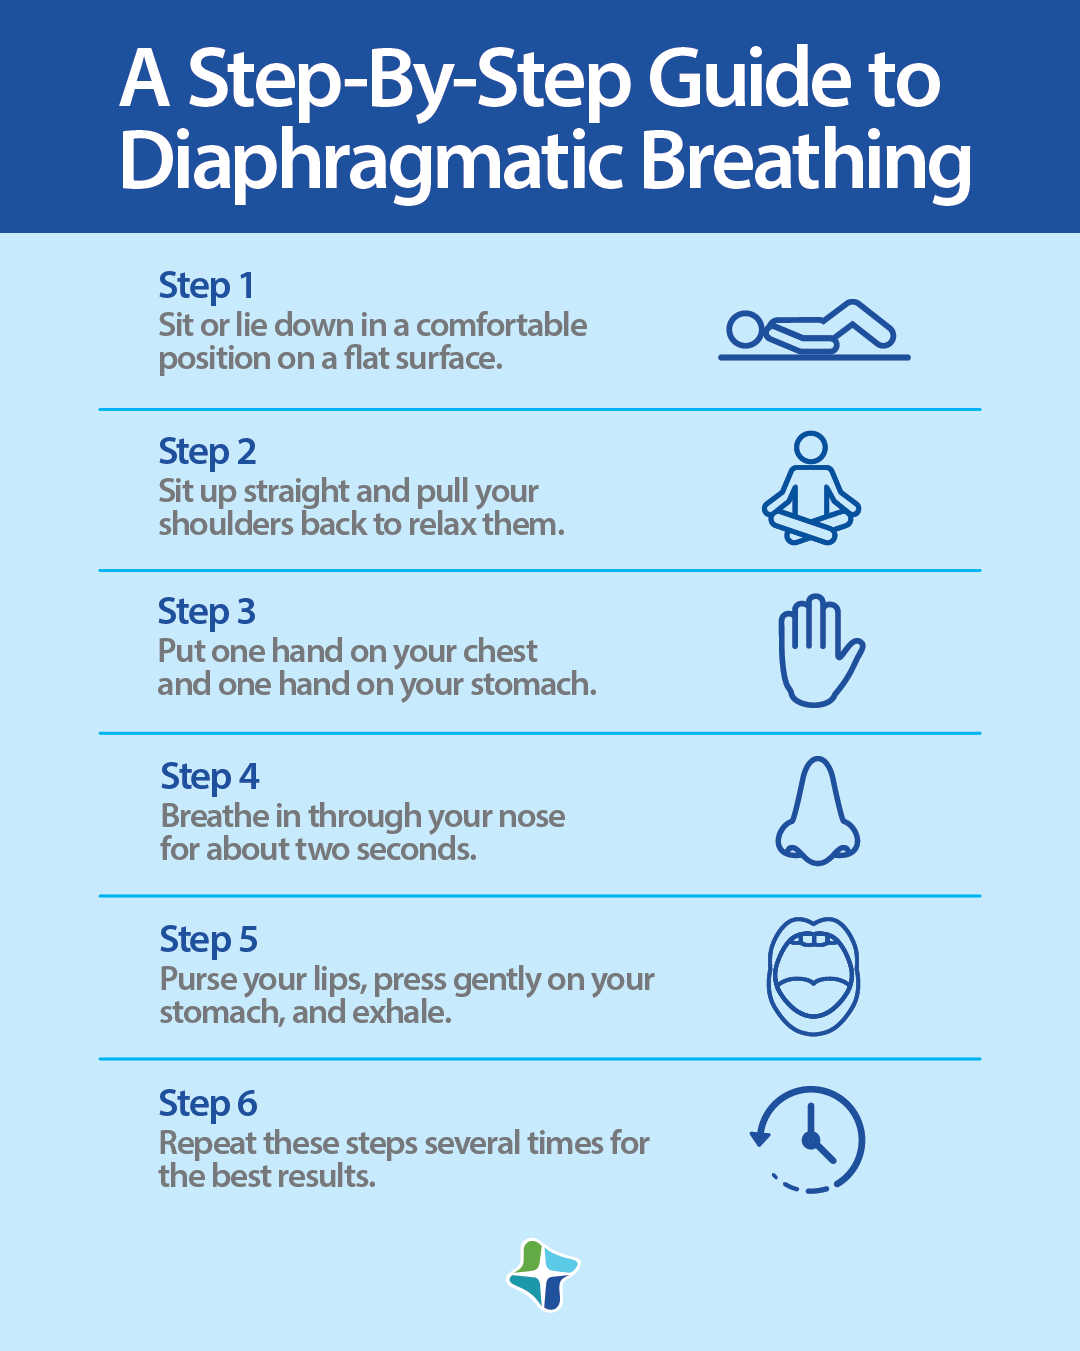 Infographic outlining the steps of diaphragmatic breathing, making sure your stomach moves in and out while your chest remains still.